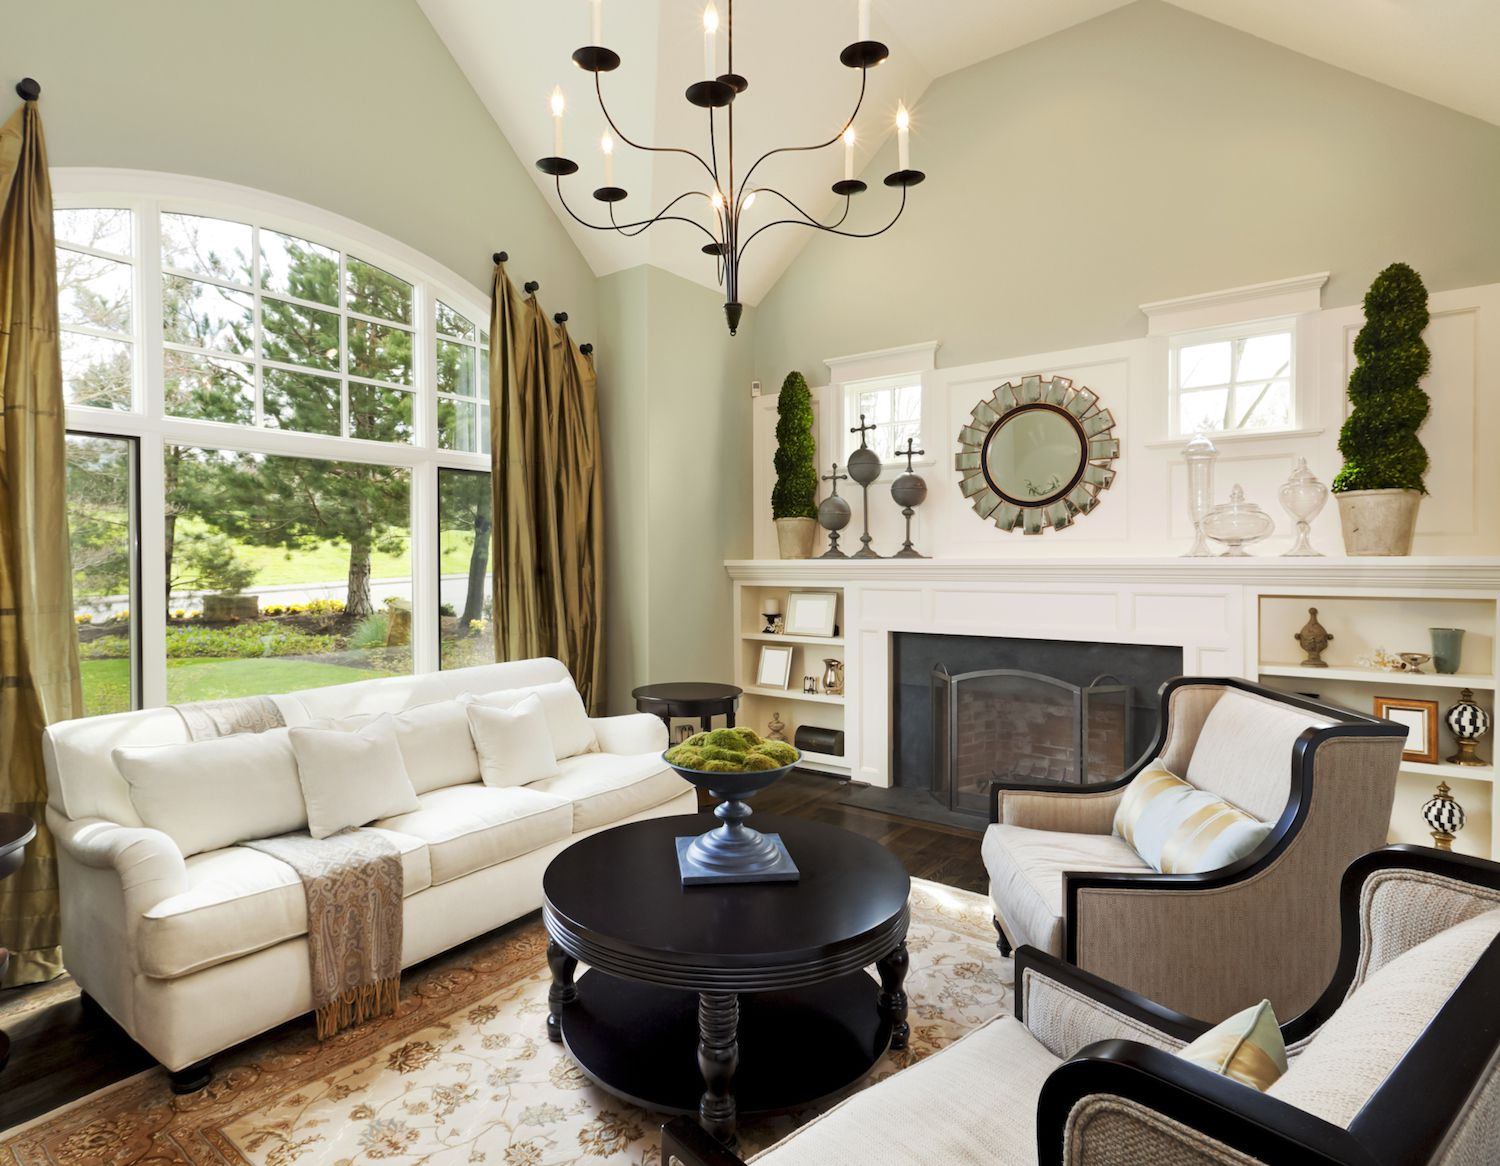 Living Room Decorating Ideas: How To Stage Your Open House To Appeal To Buyers